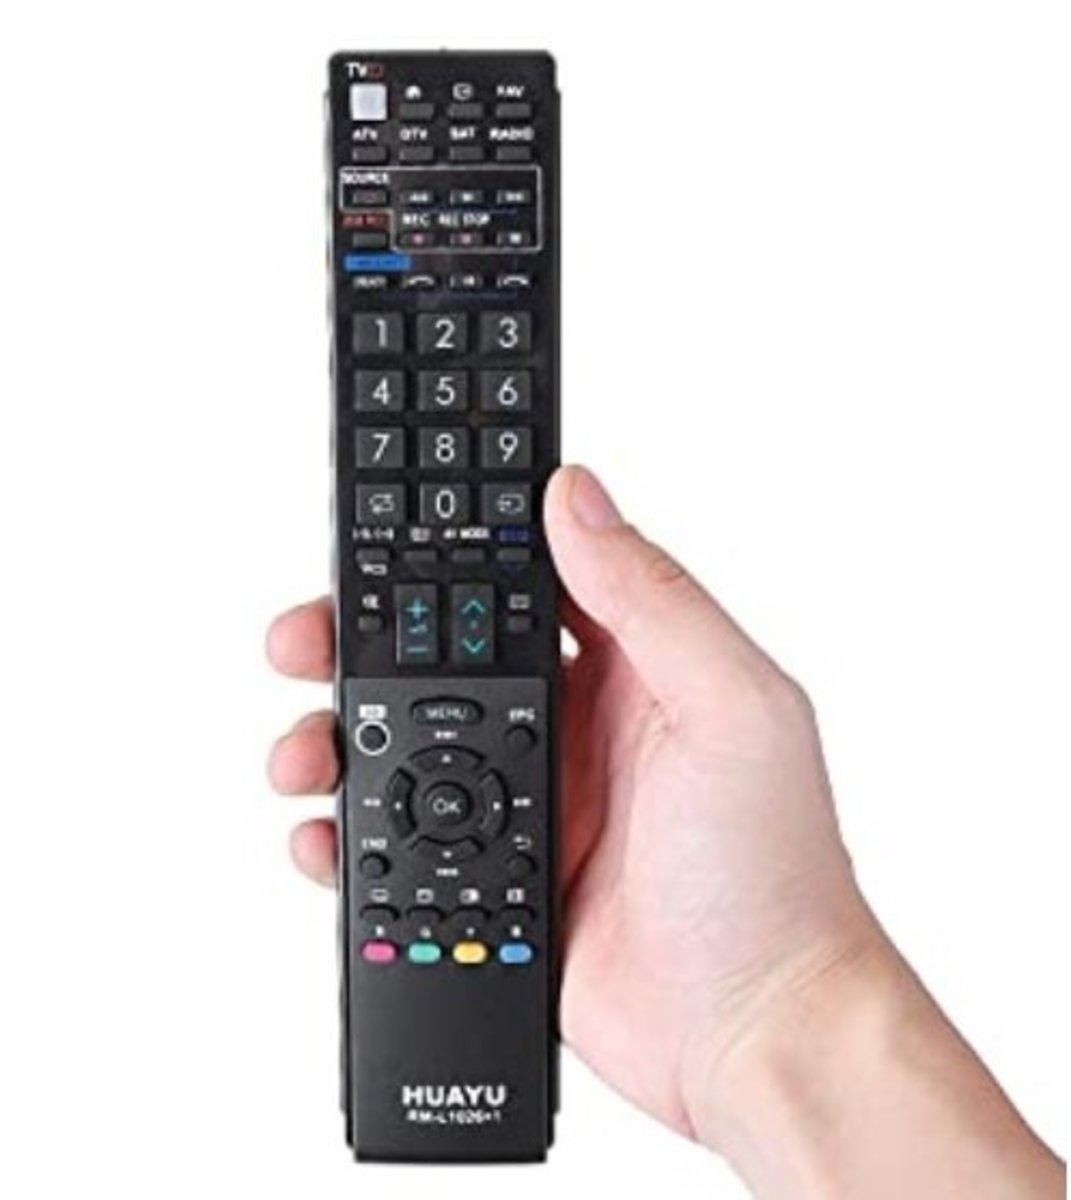 RM-L1026+1 Universal Remote Control for Sharp LED/LCD/HDTV/3D TV